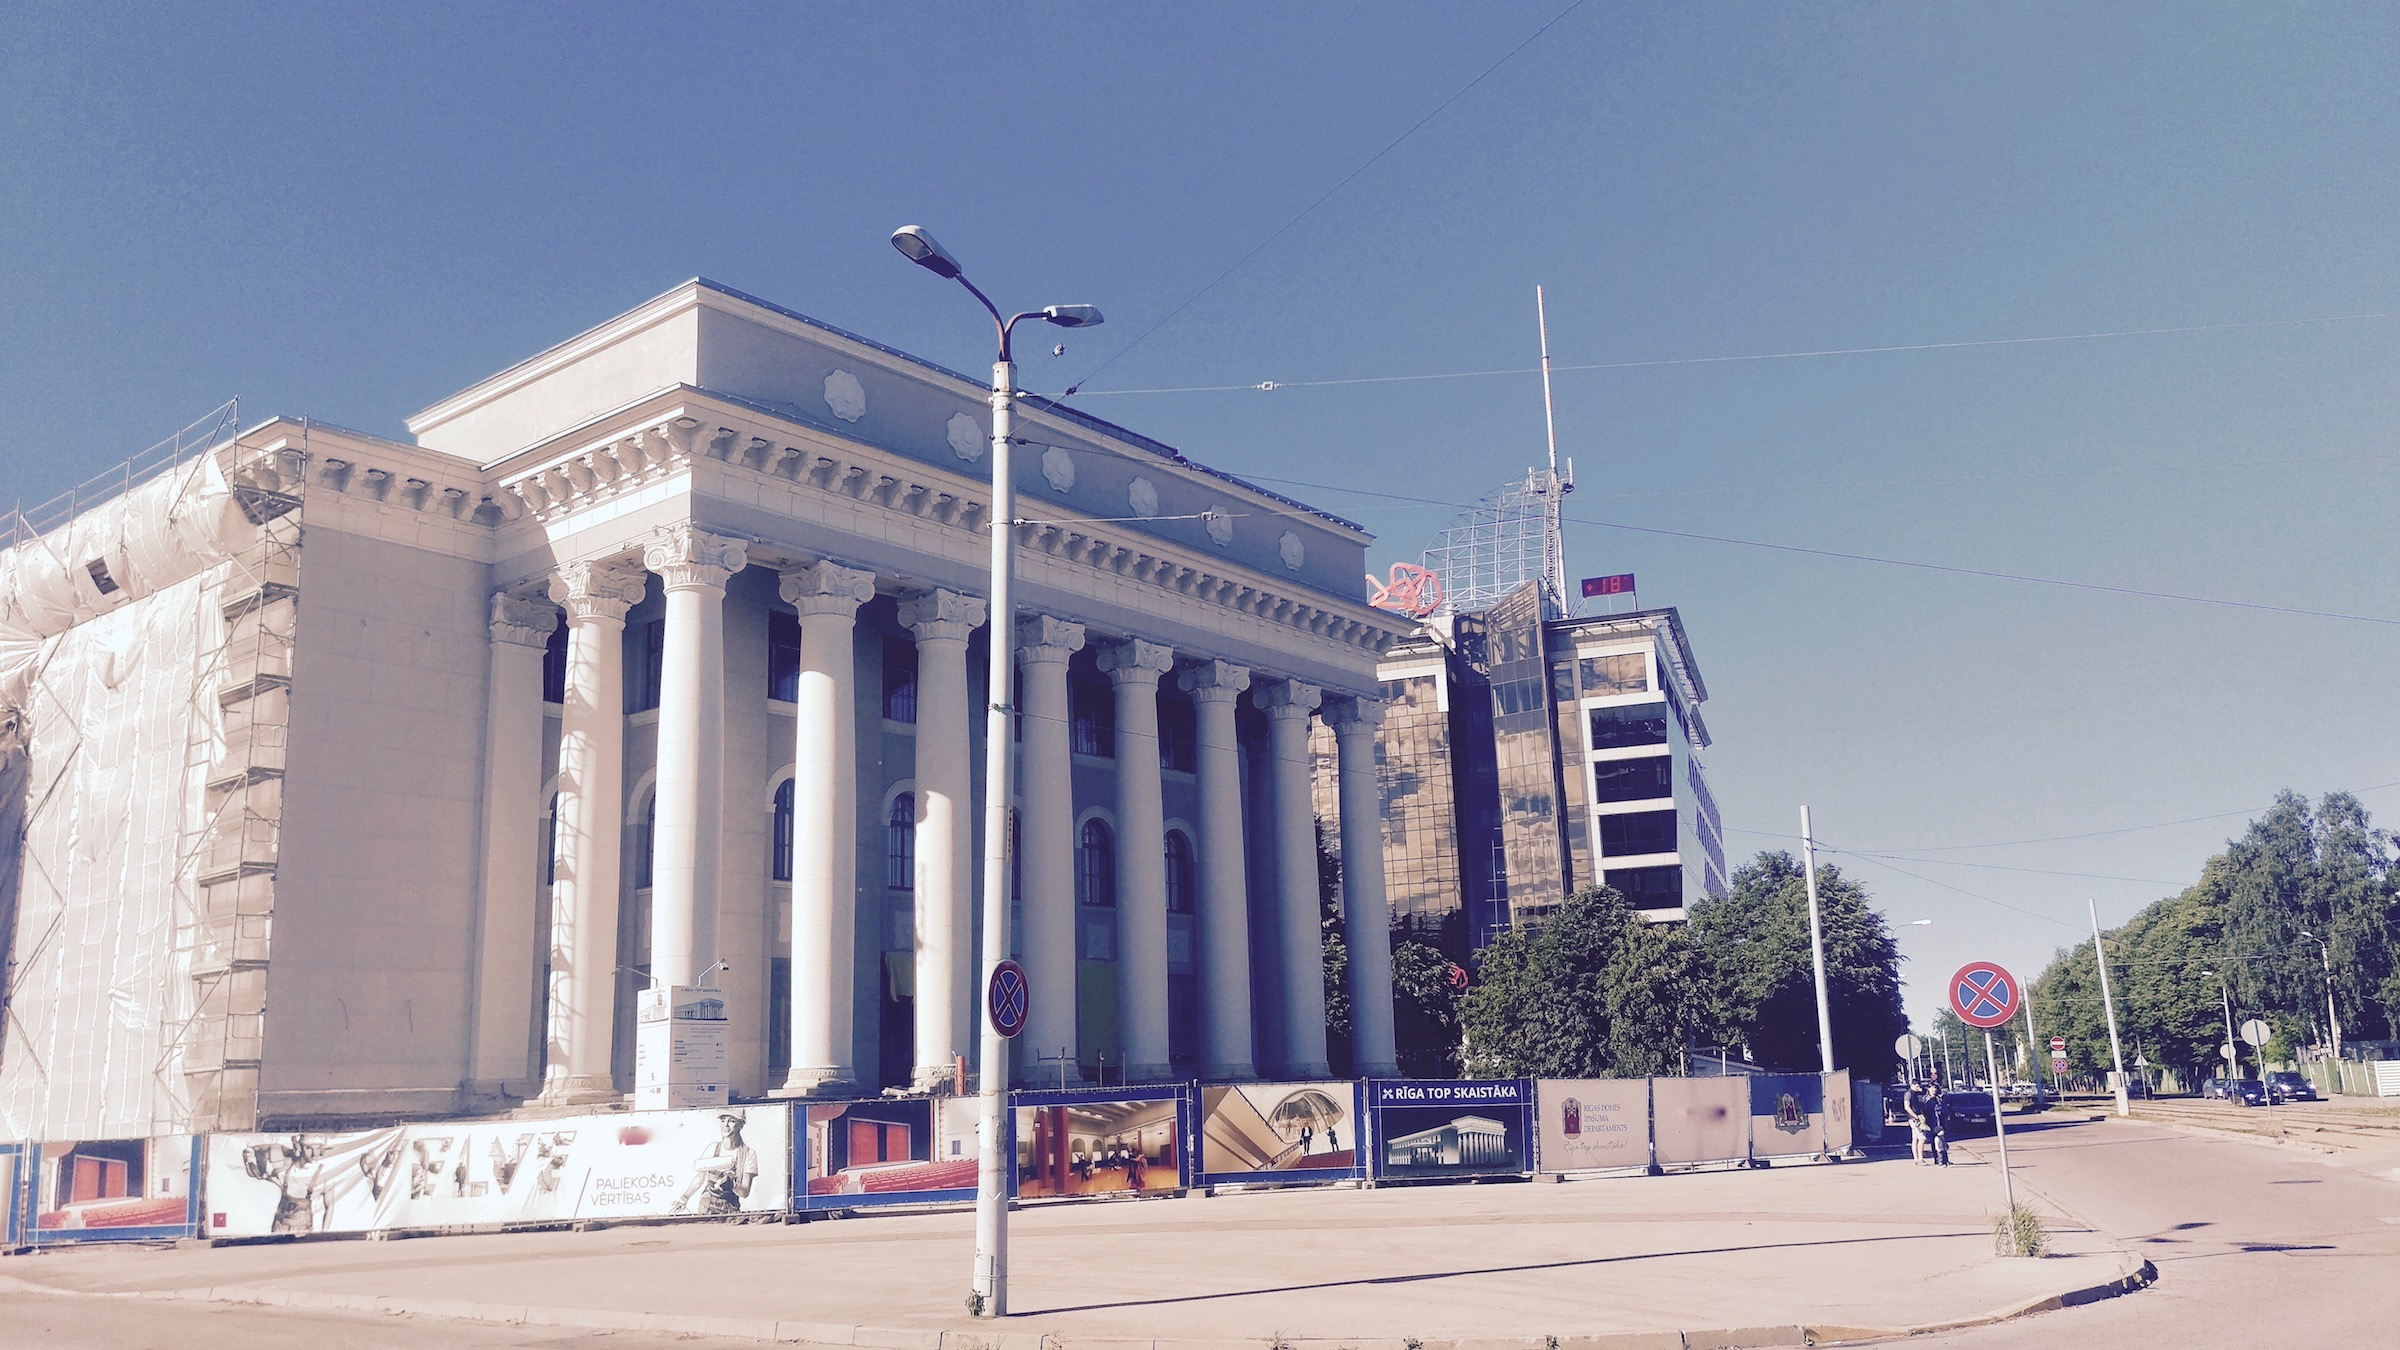 VEF Culture Palace - a venue for various cultural events